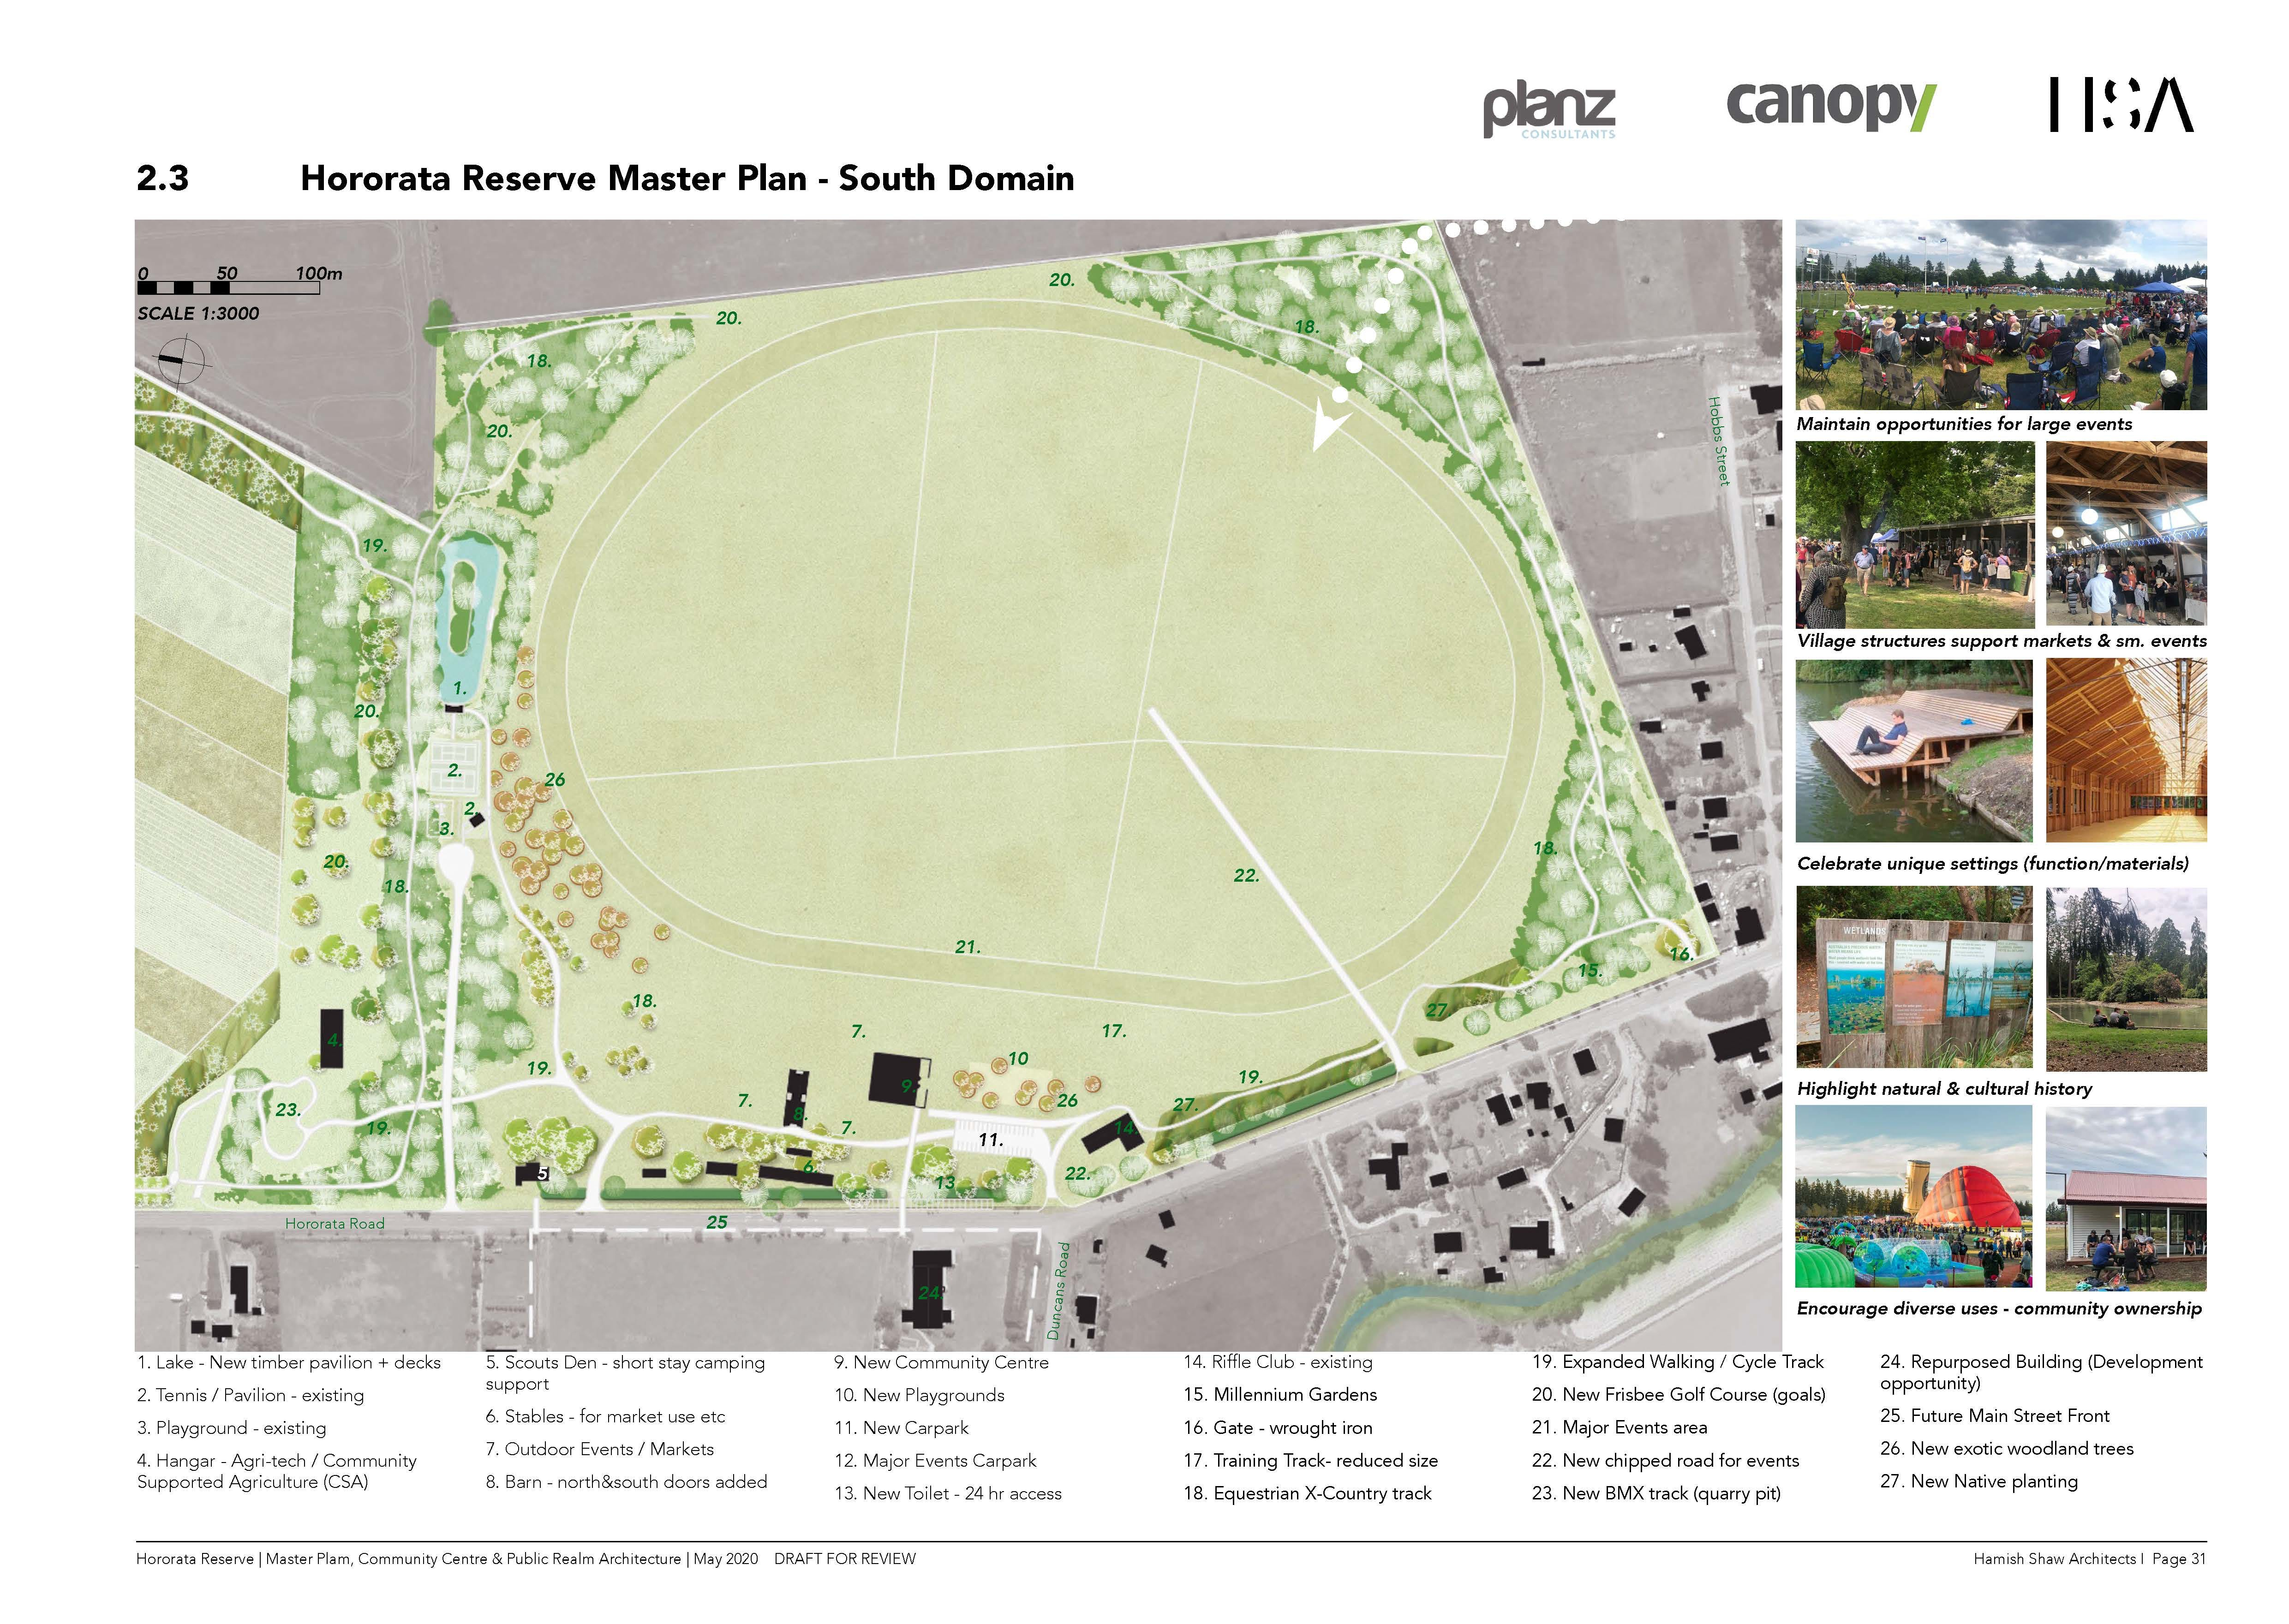 Hororata Reserve Master Plan - South domain. Image: Selwyn District Council